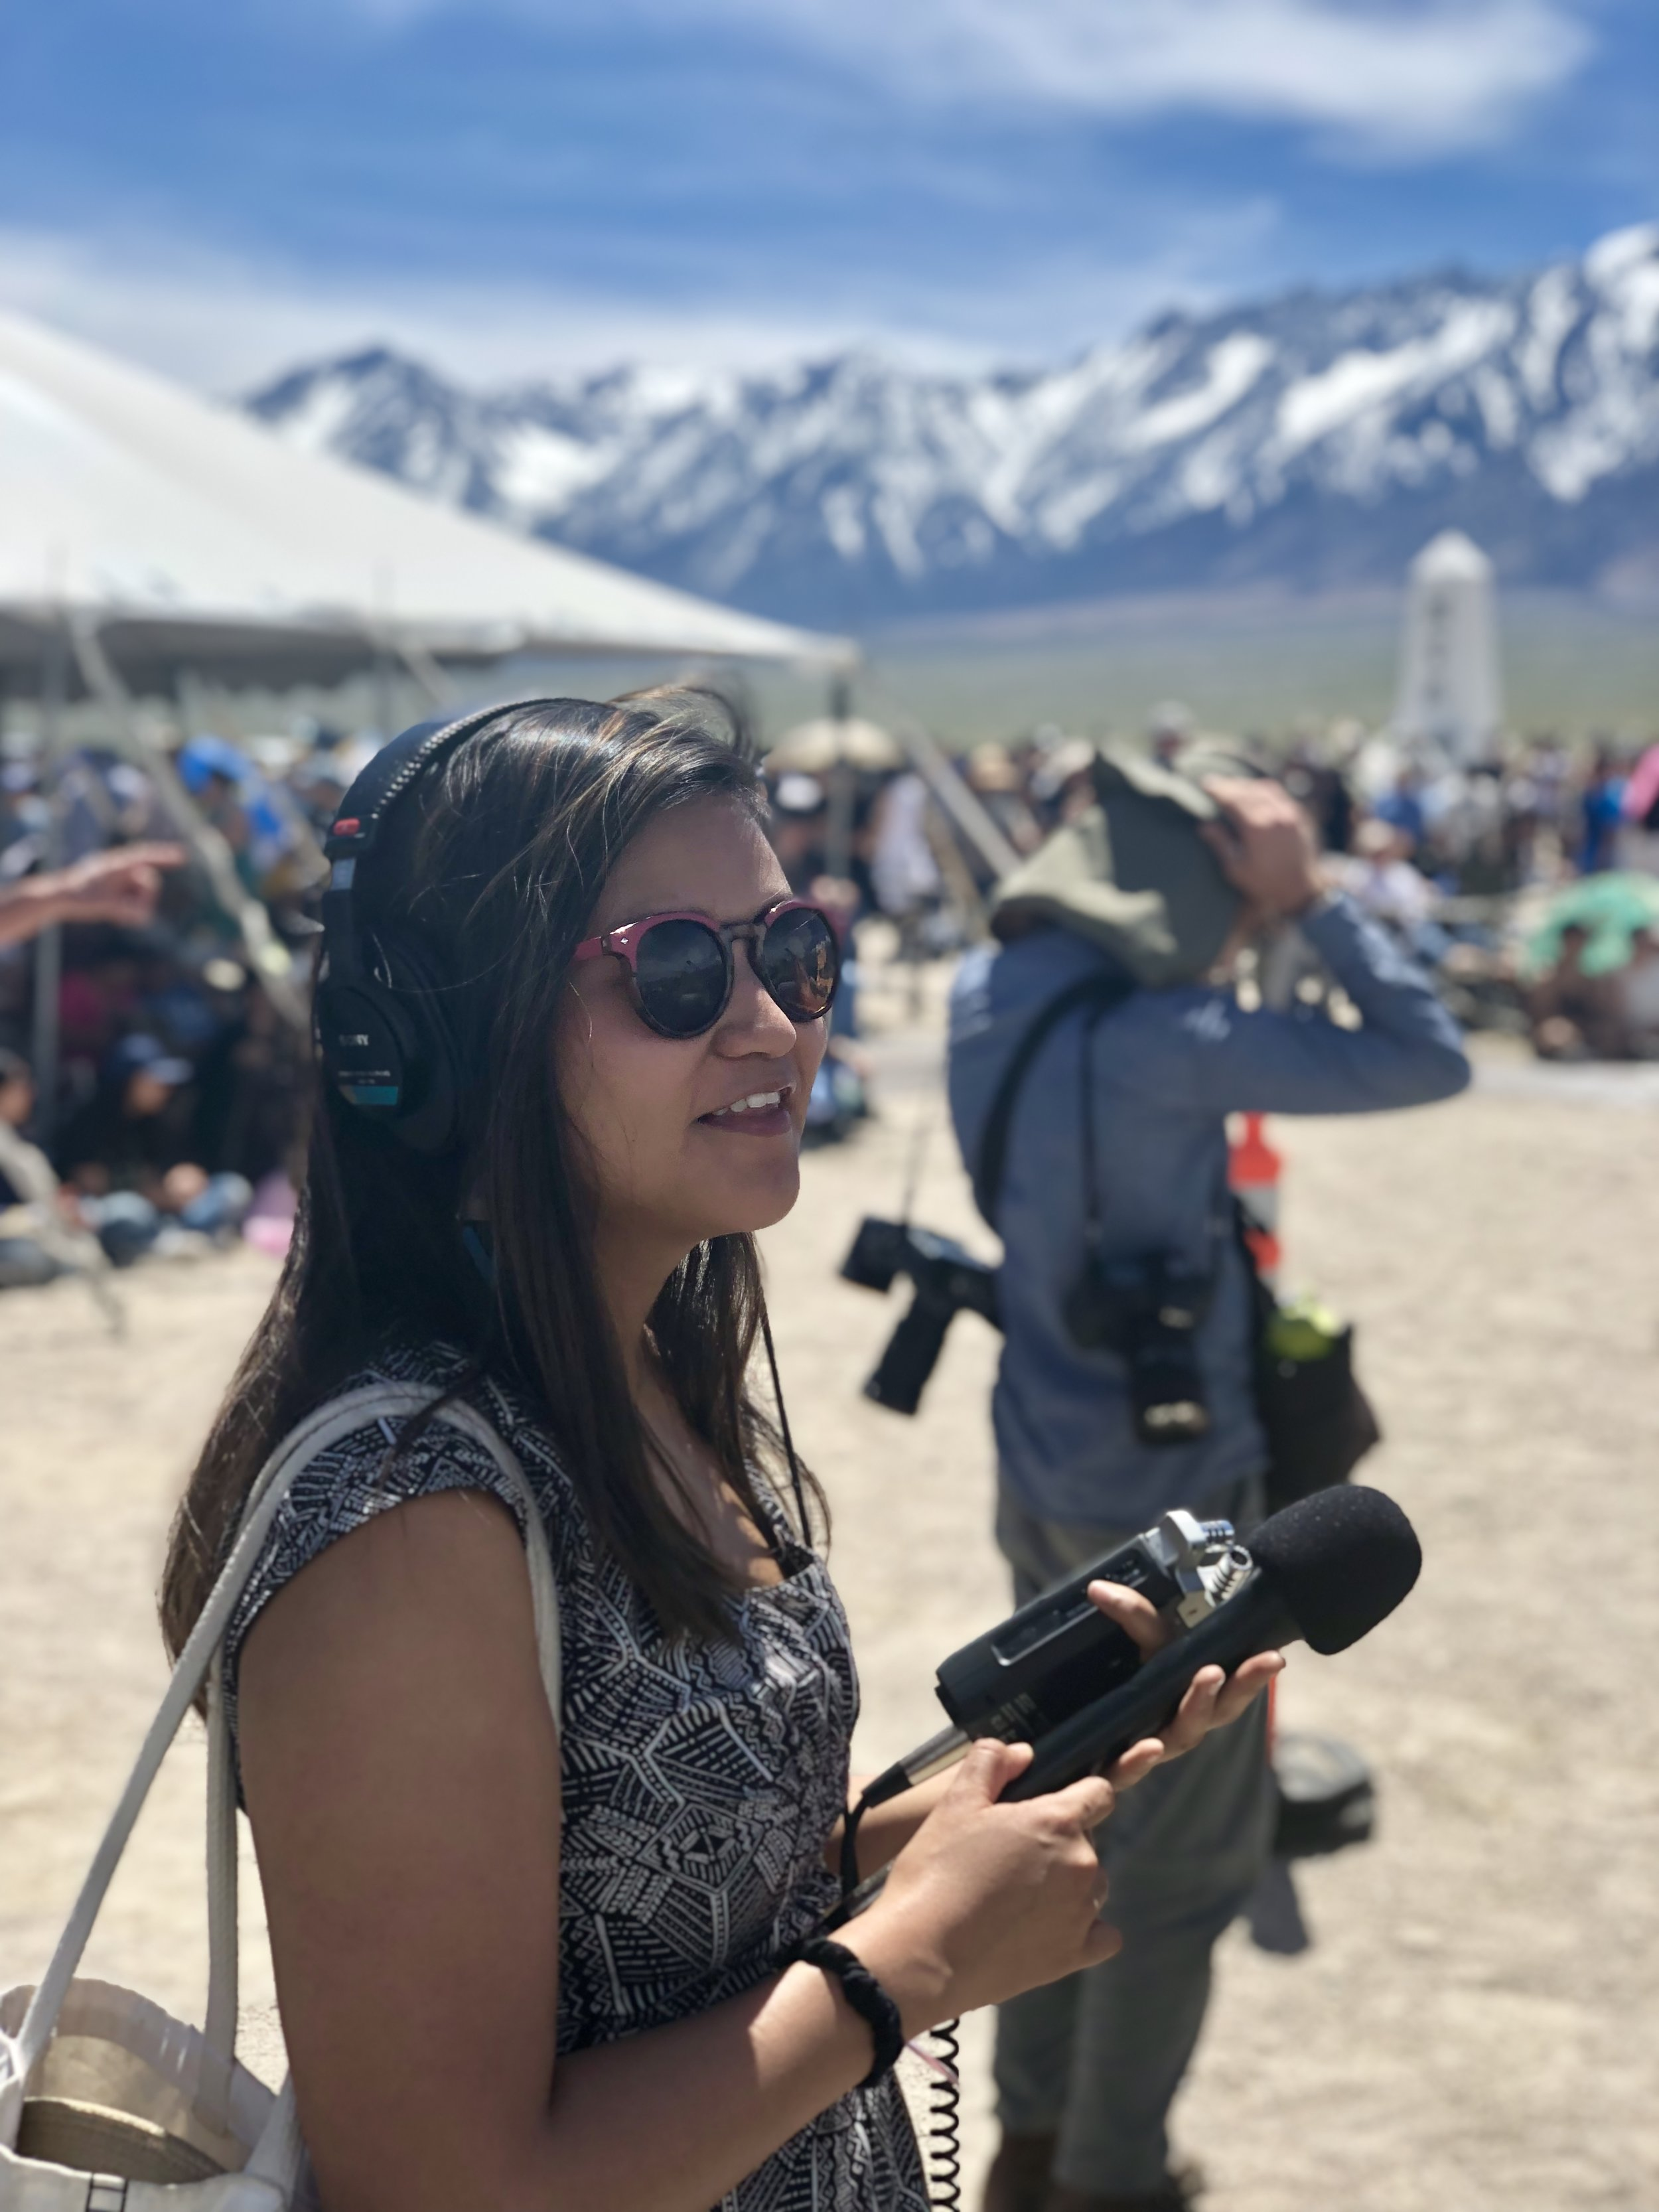 Sarah attends an annual remembrance event at Manzanar National Historical Site in Independence, California where Japanese American families were forcibly detained in internment camps during World War II. The site is located on Nüümü, and Shoshone land.  Photo courtesy of Kevin Keller